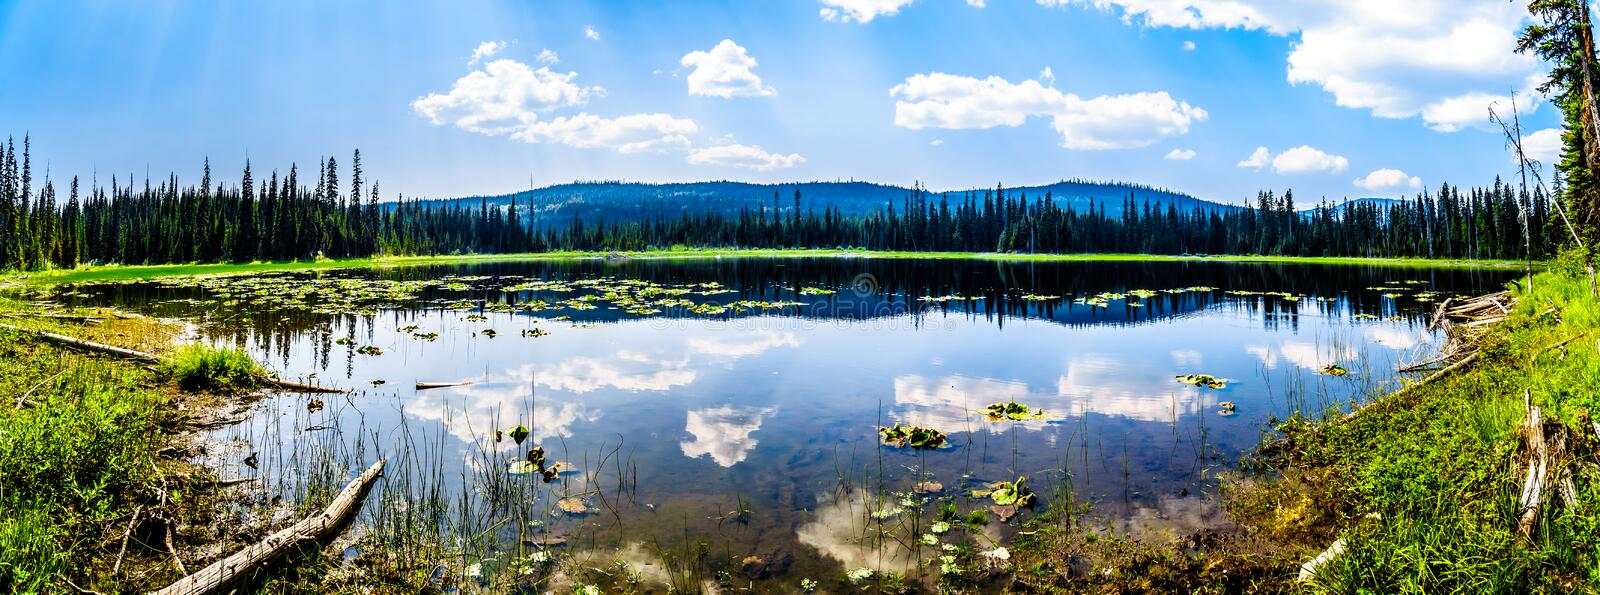 Little McGillivray Lake, near Sun Peaks in British Columbia, Canada. Little McGillivray Lake, a high alpine lake near the alpine village of Sun Peaks in the royalty free stock photography